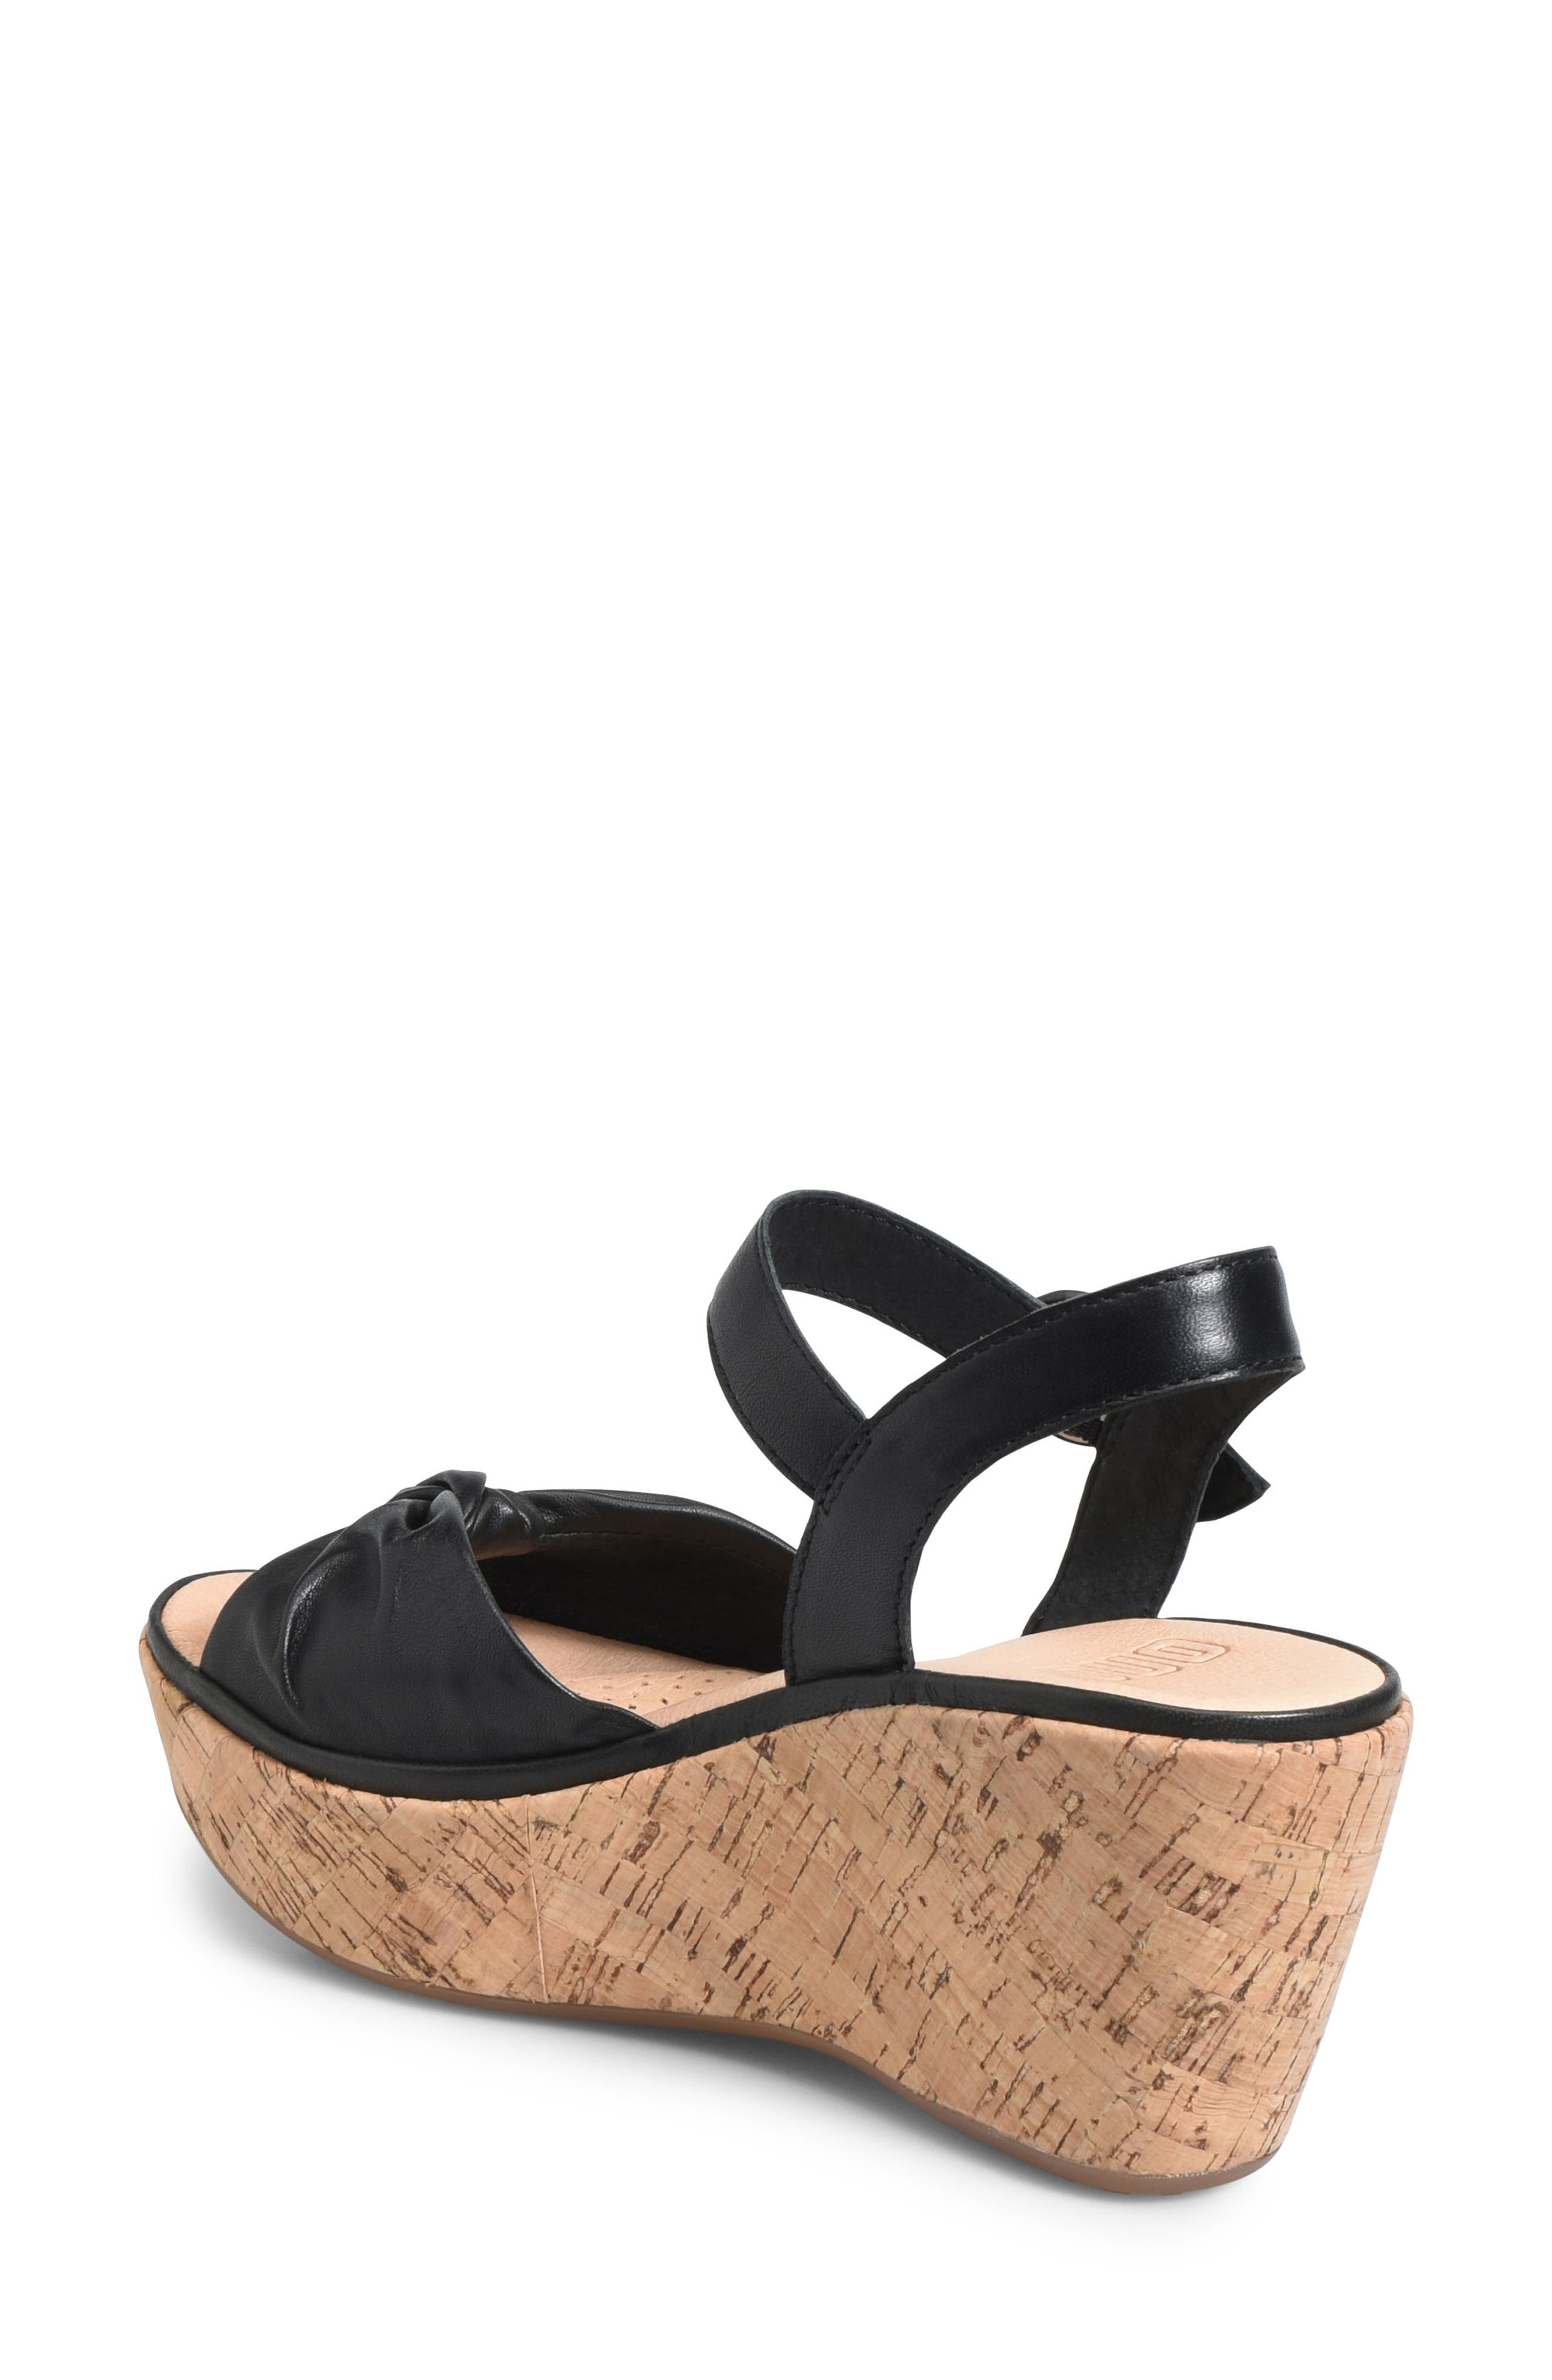 Heavenly Platform Wedge Sandal,                             Alternate thumbnail 2, color,                             BLACK LEATHER